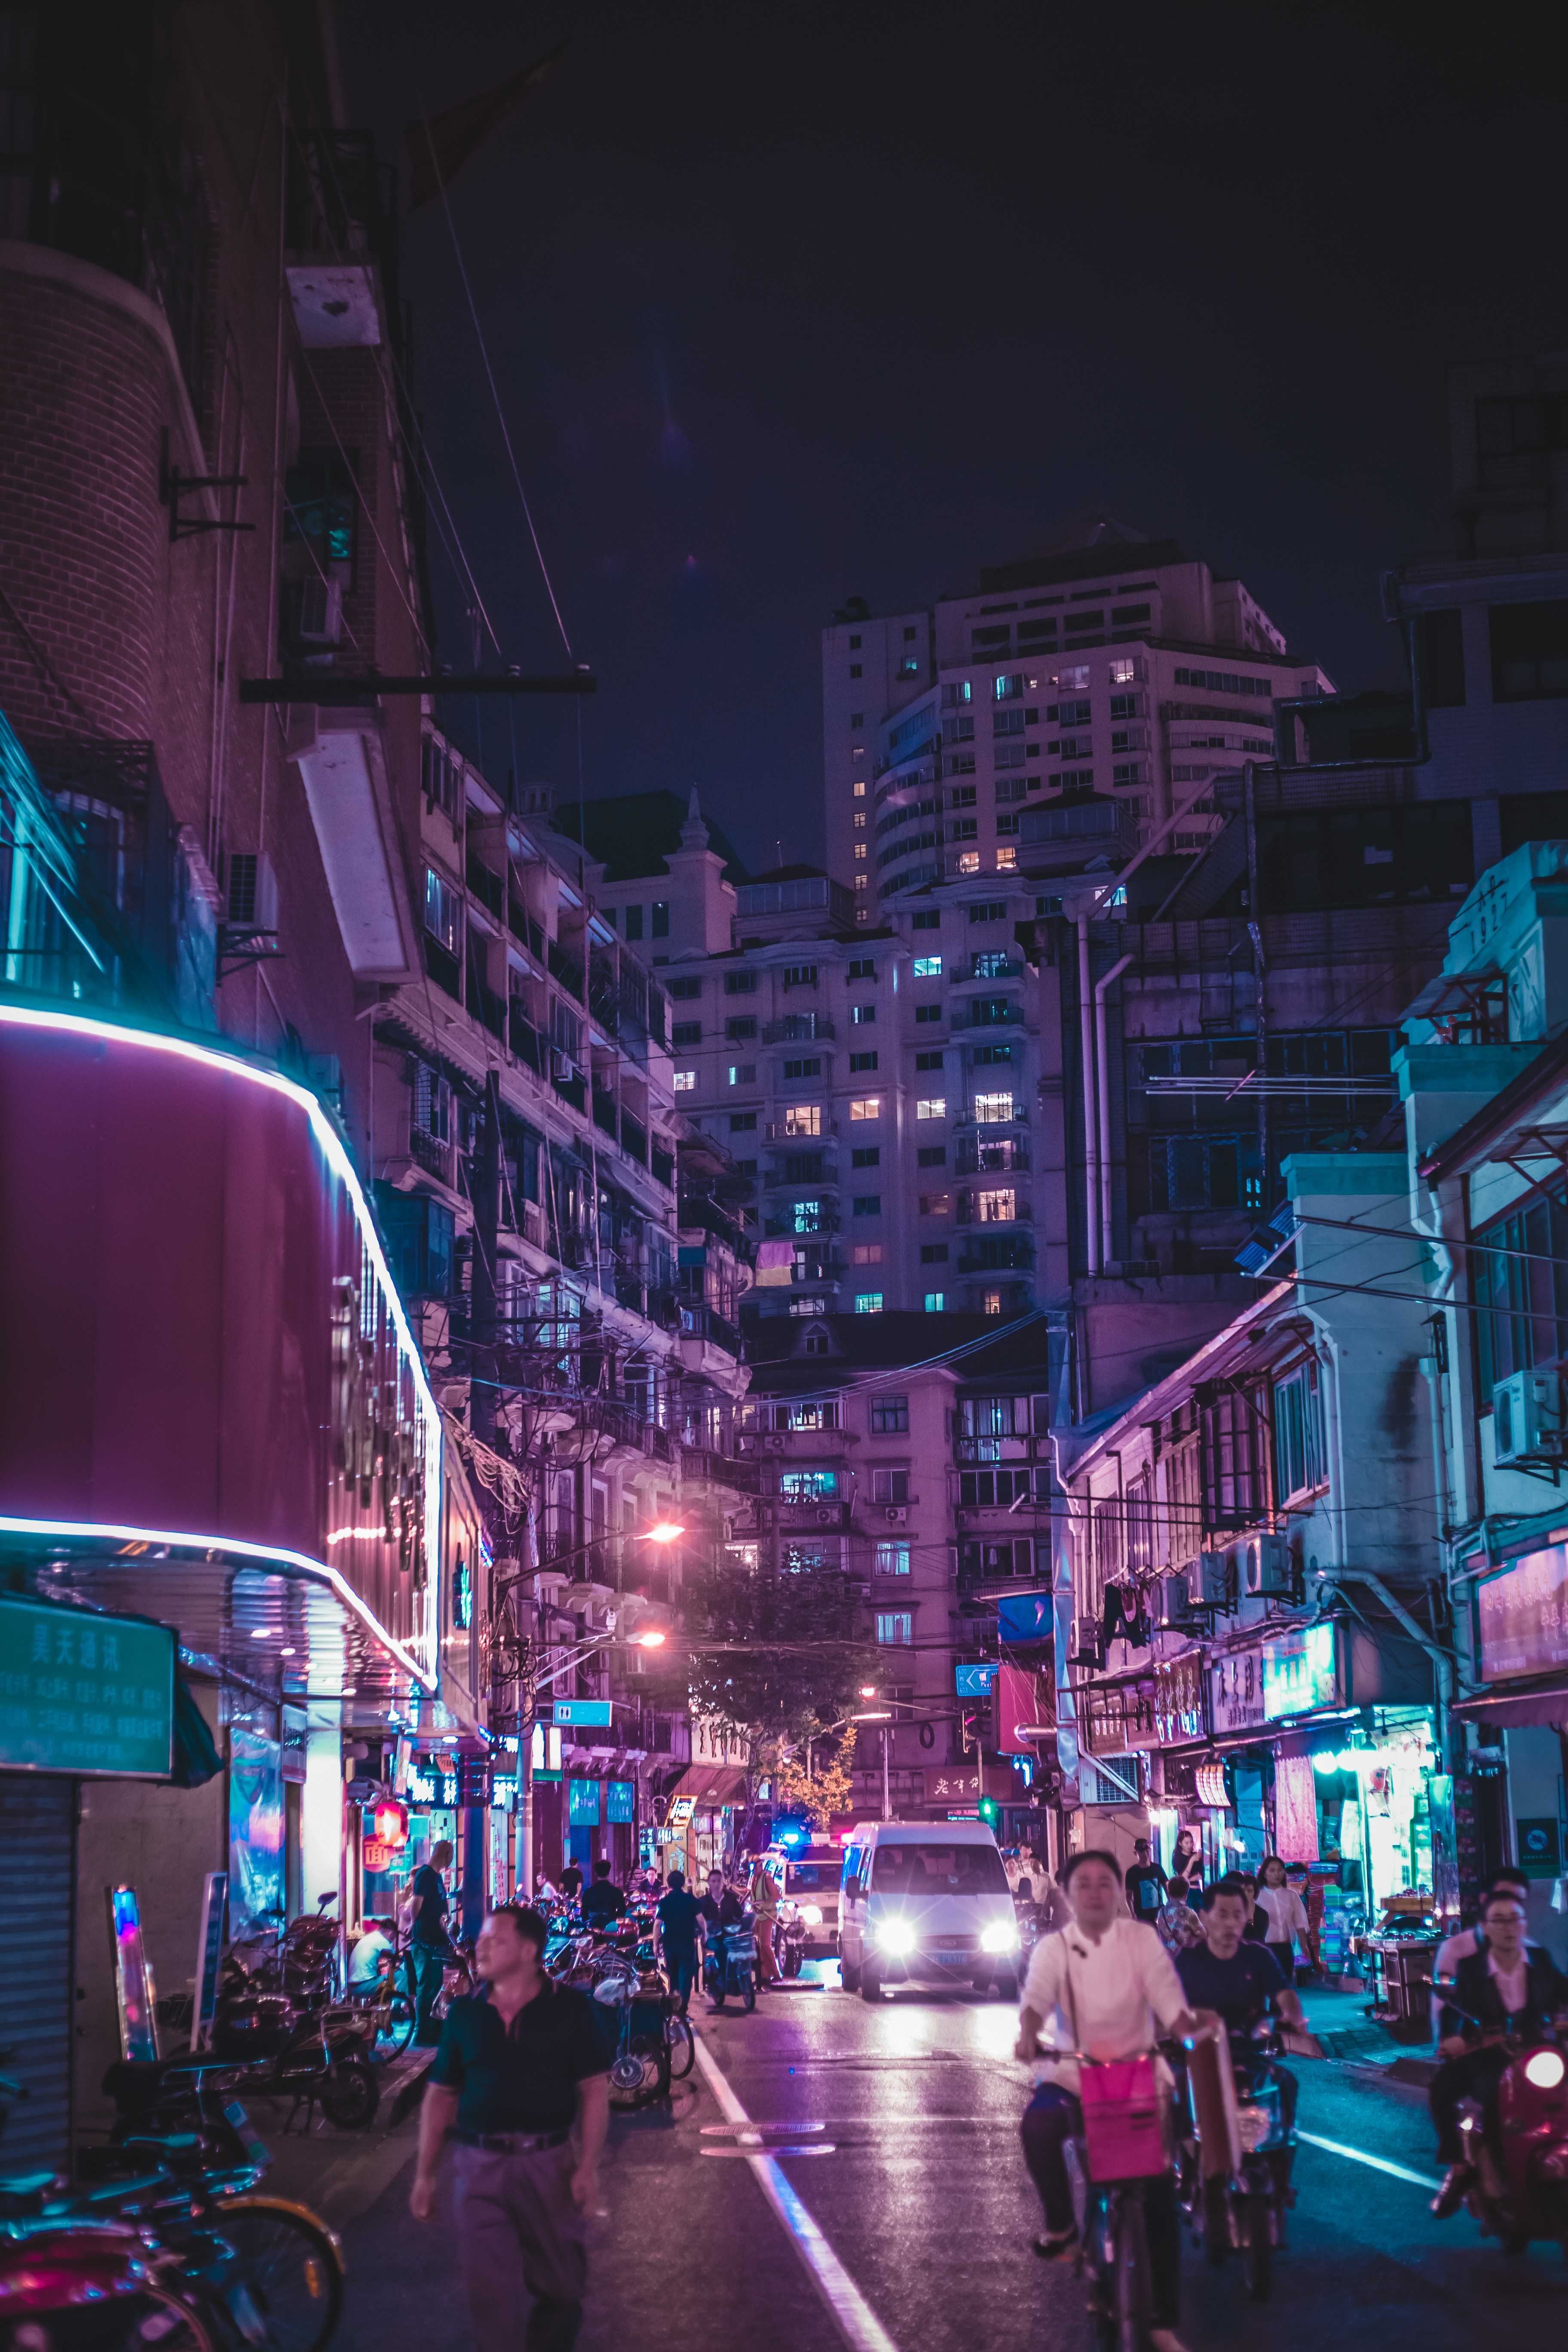 Chinese trademark protections last for 10 years, but can be extended another 10 years. - MakersValley Blog